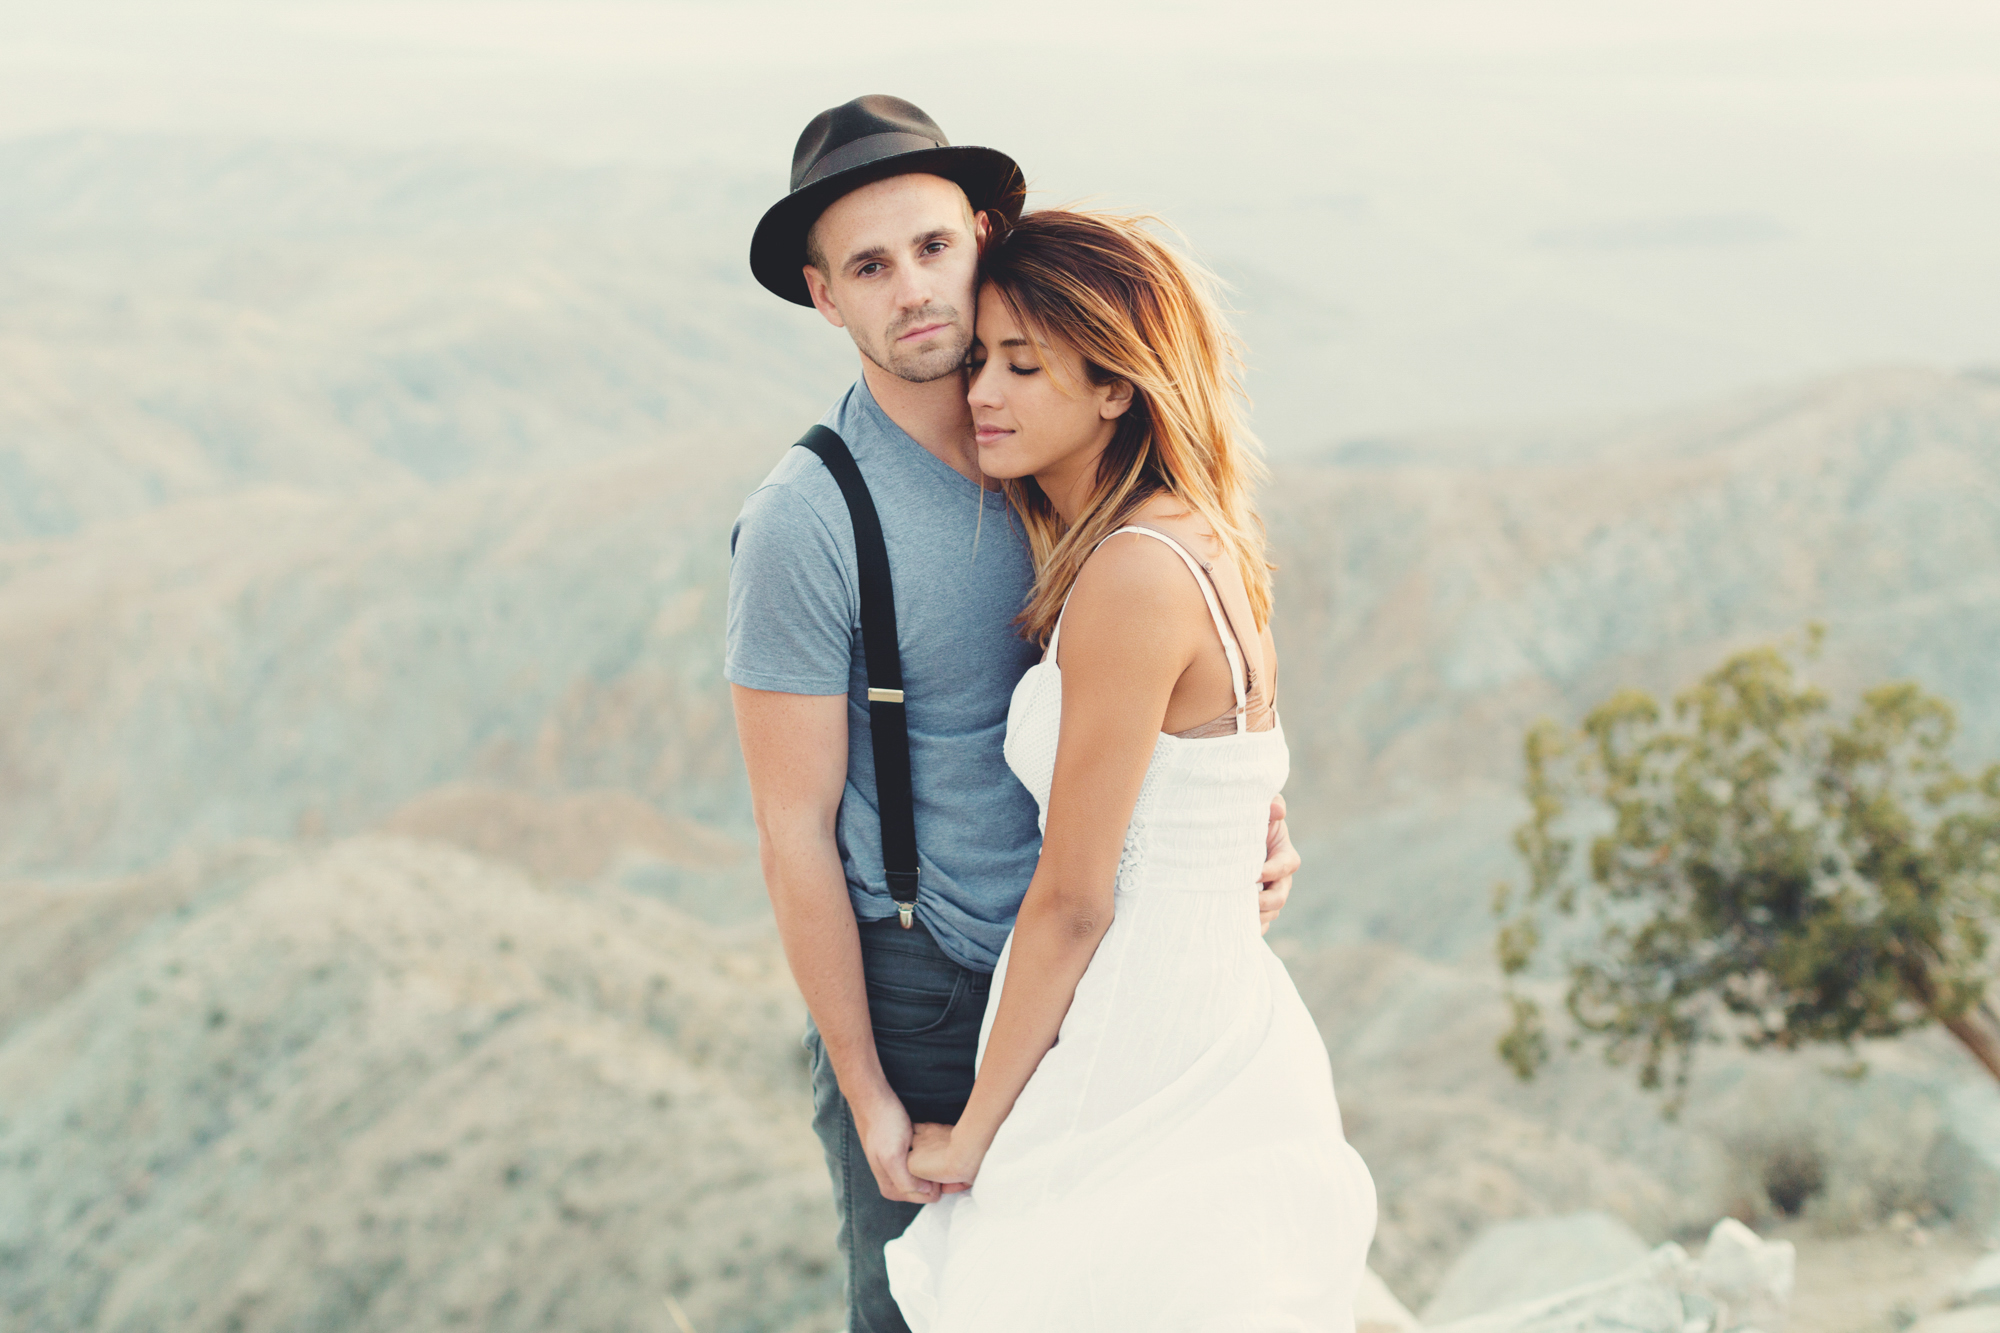 Joshua Tree Engagement Session @Anne-Claire Brun -15